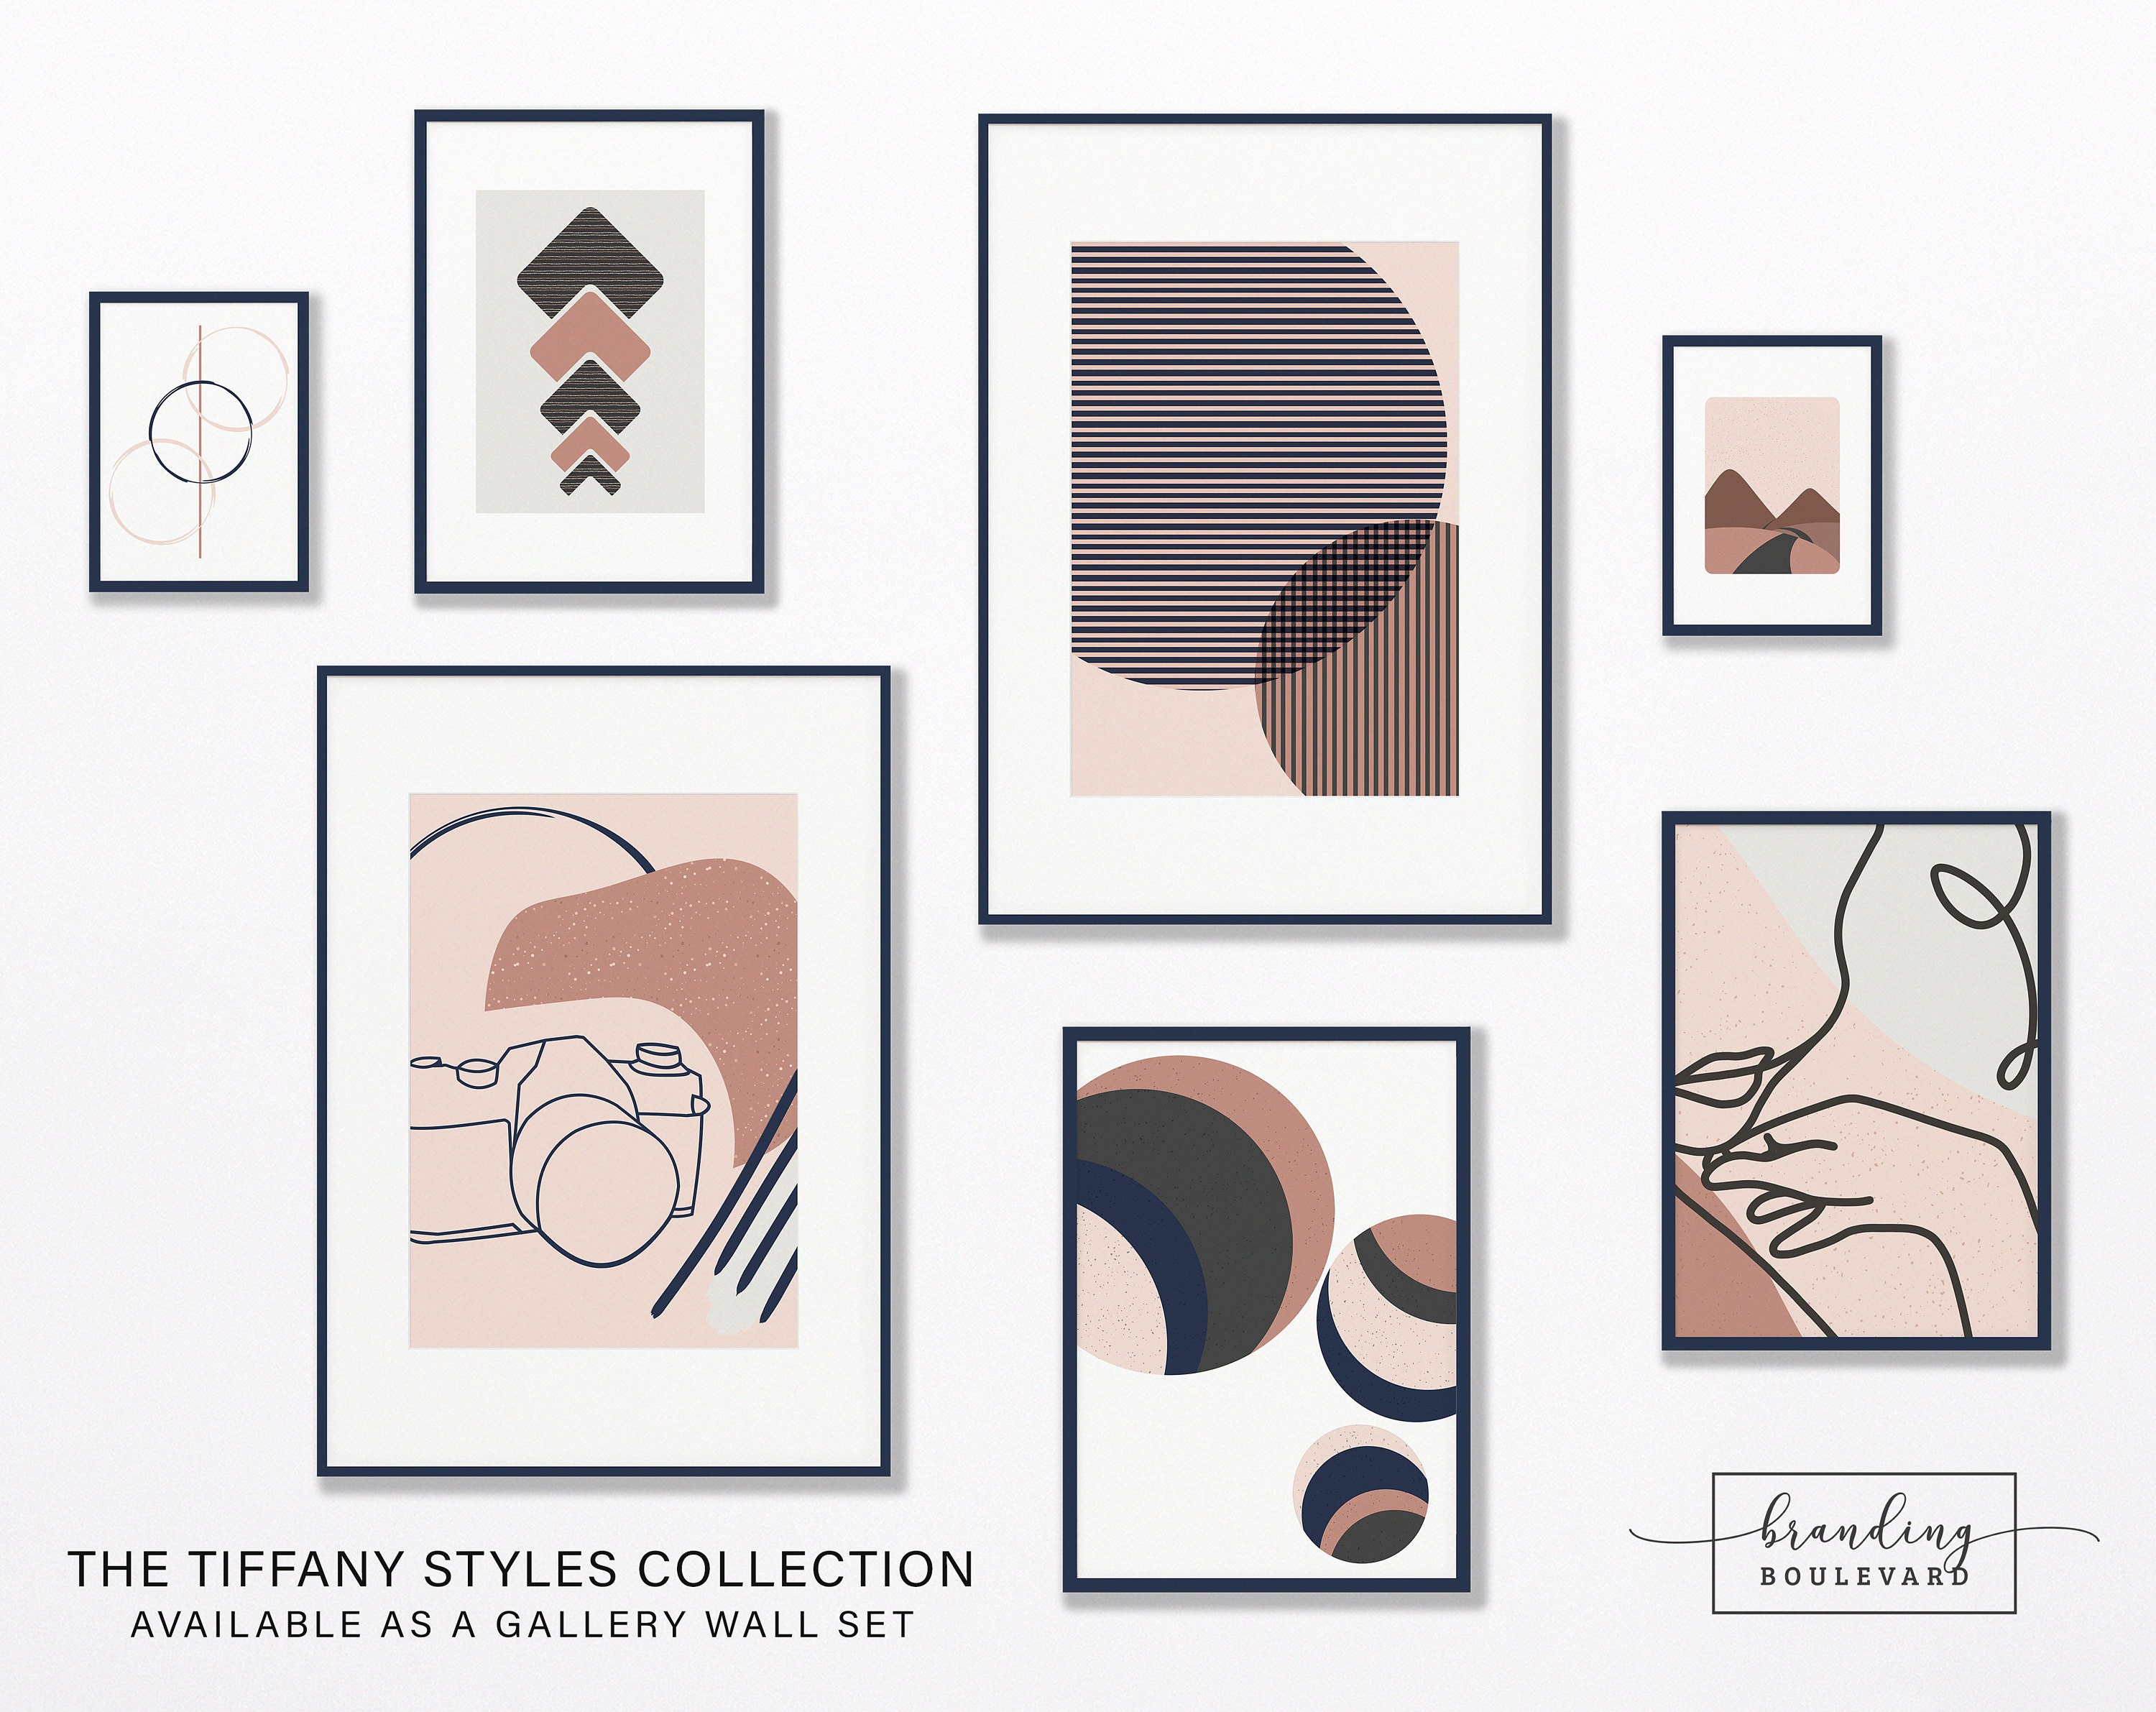 Tiffany Styles Art Print Collection - Abstract One Line Minimalist Artwork - Camera Female Figure Shapes and Landscape - In Navy Blue, Light Gray, Blush Pink, Dark Gray, and Rose Gold Color Palette